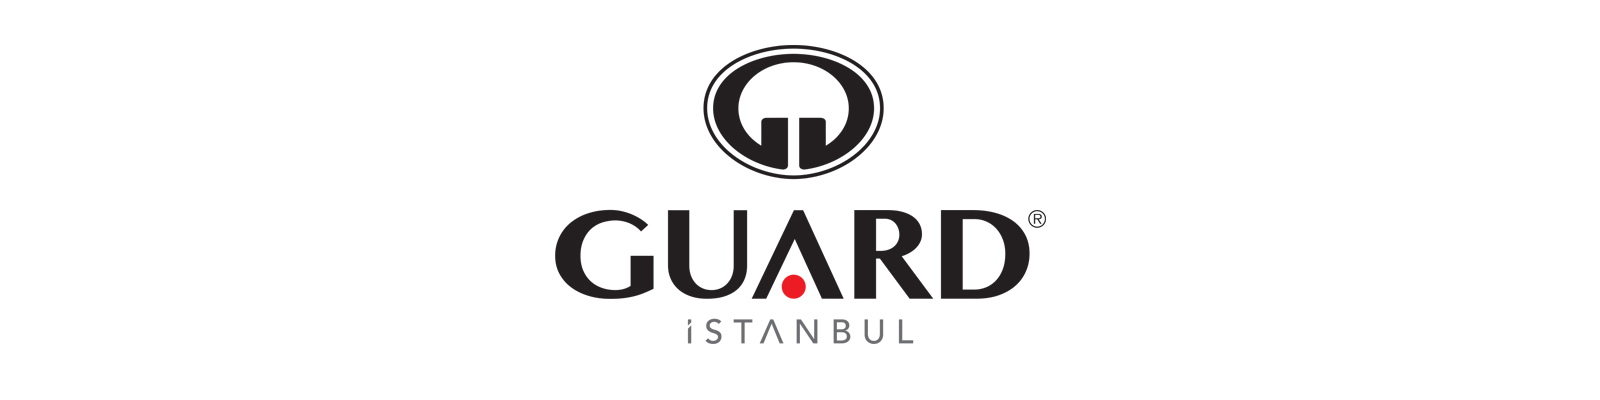 Guard Istambul